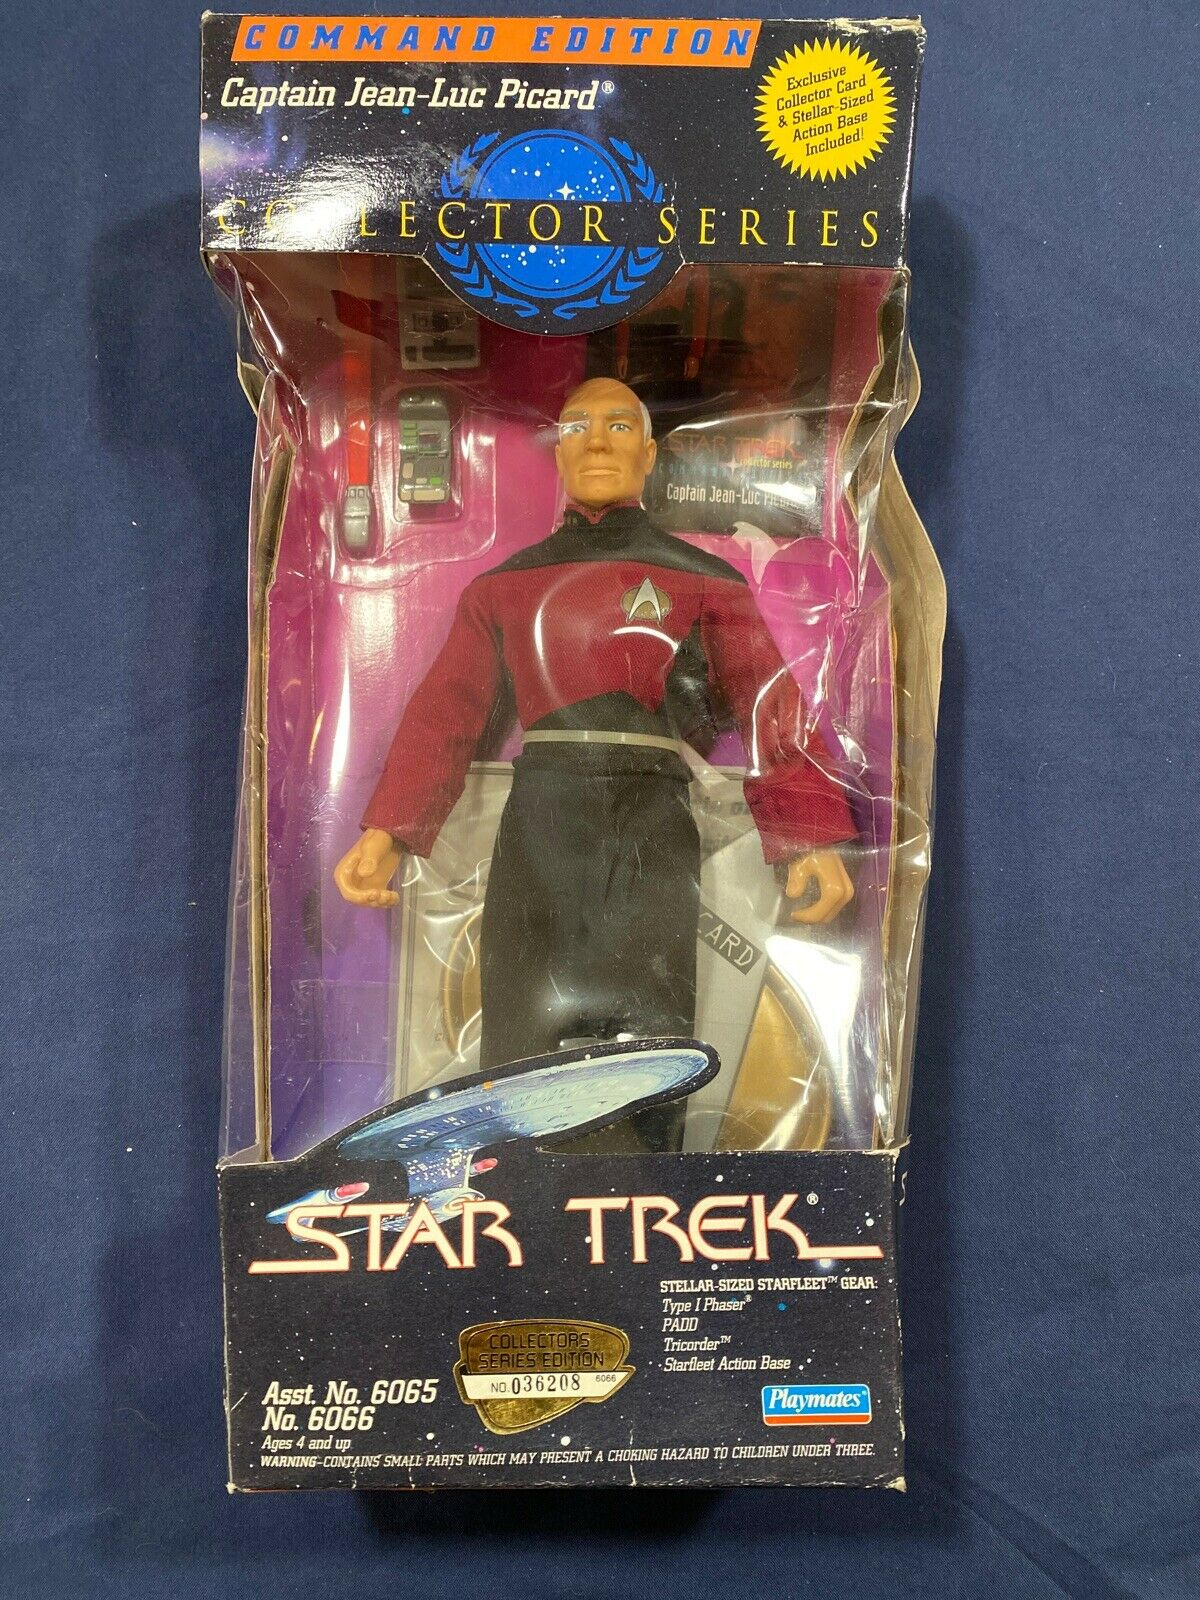 mint in box Playmates 1997 Star Trek Latinum Edition Captain Jean Luc Picard